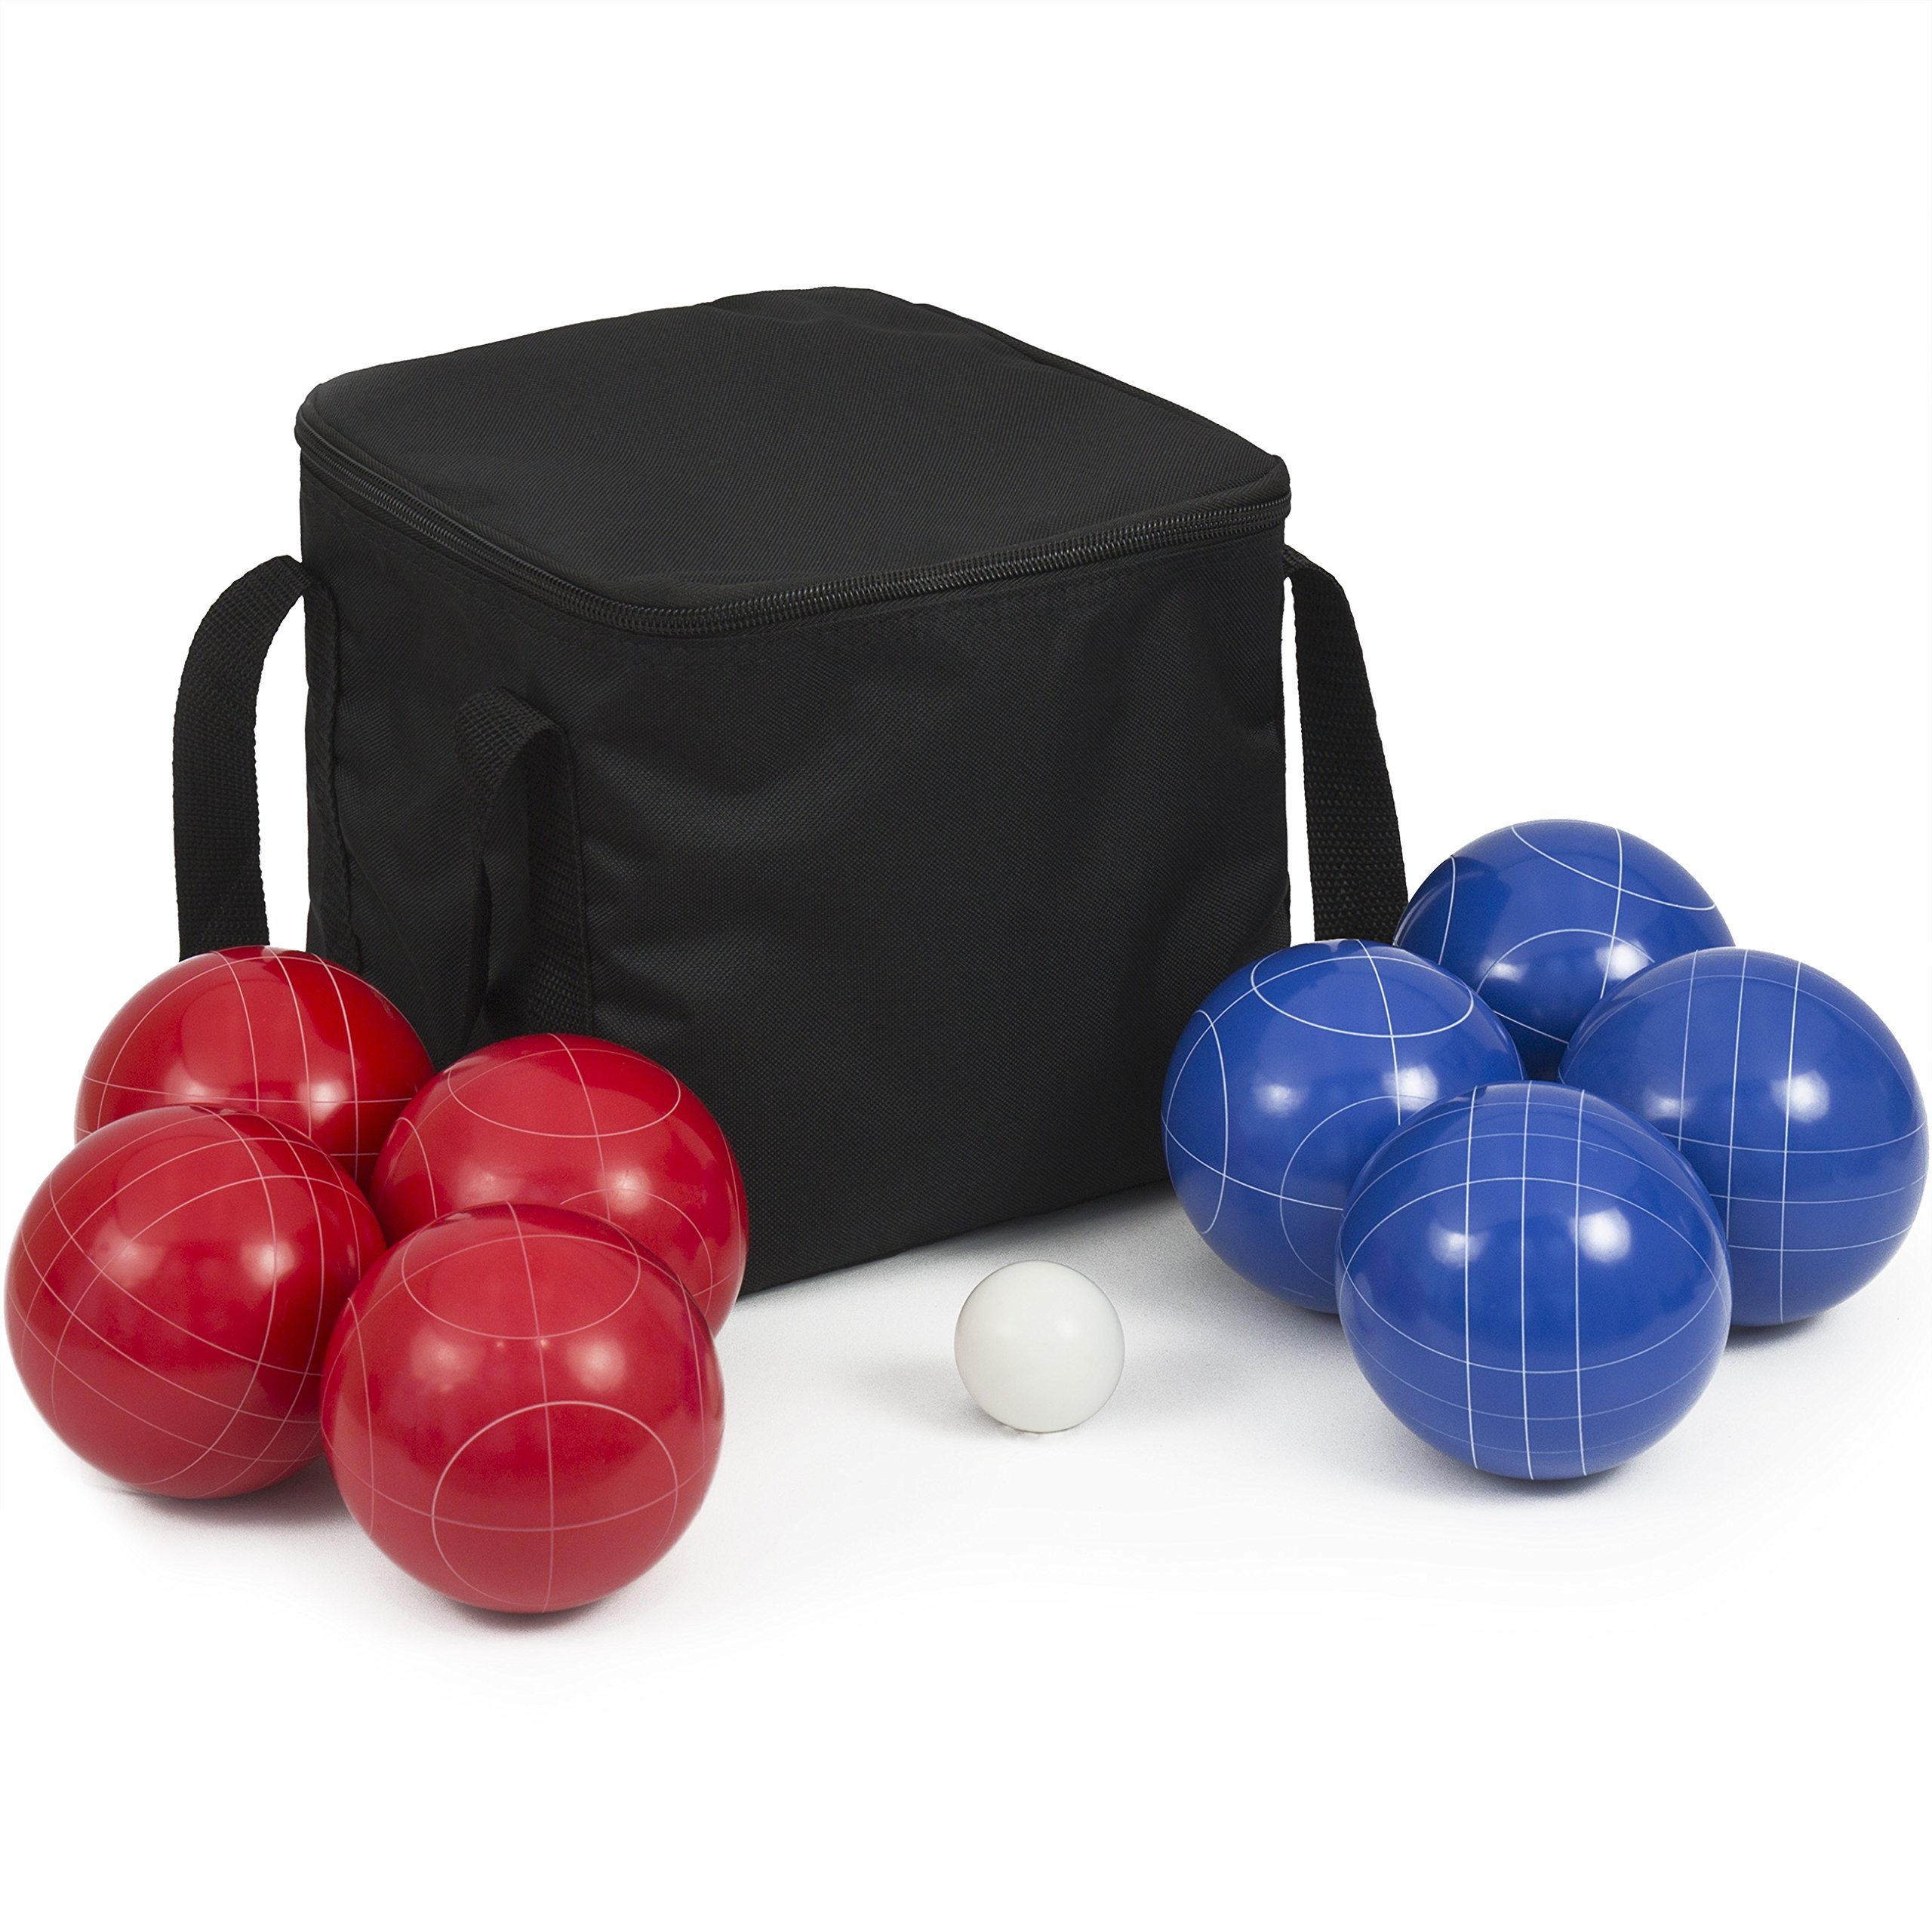 Best Choice Products 90mm Portable Lawn Games Resin Ultimate Bocce Balls Set w/ 9 Balls and Carrying Case - Multicolor